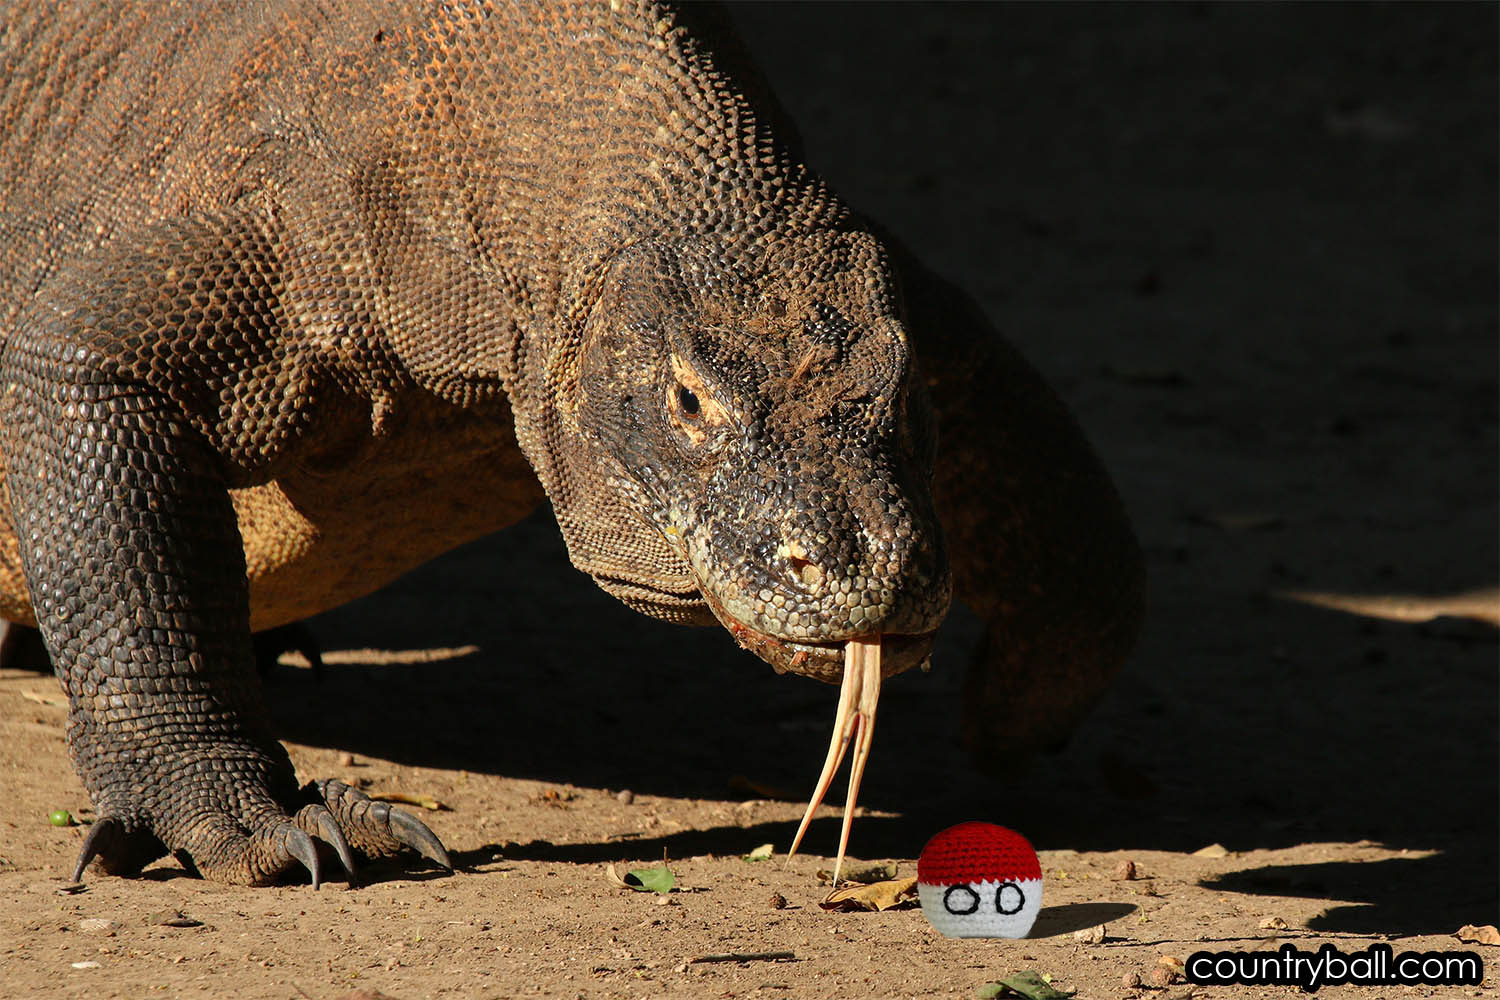 Komodo Dragon tasting Indonesiaball